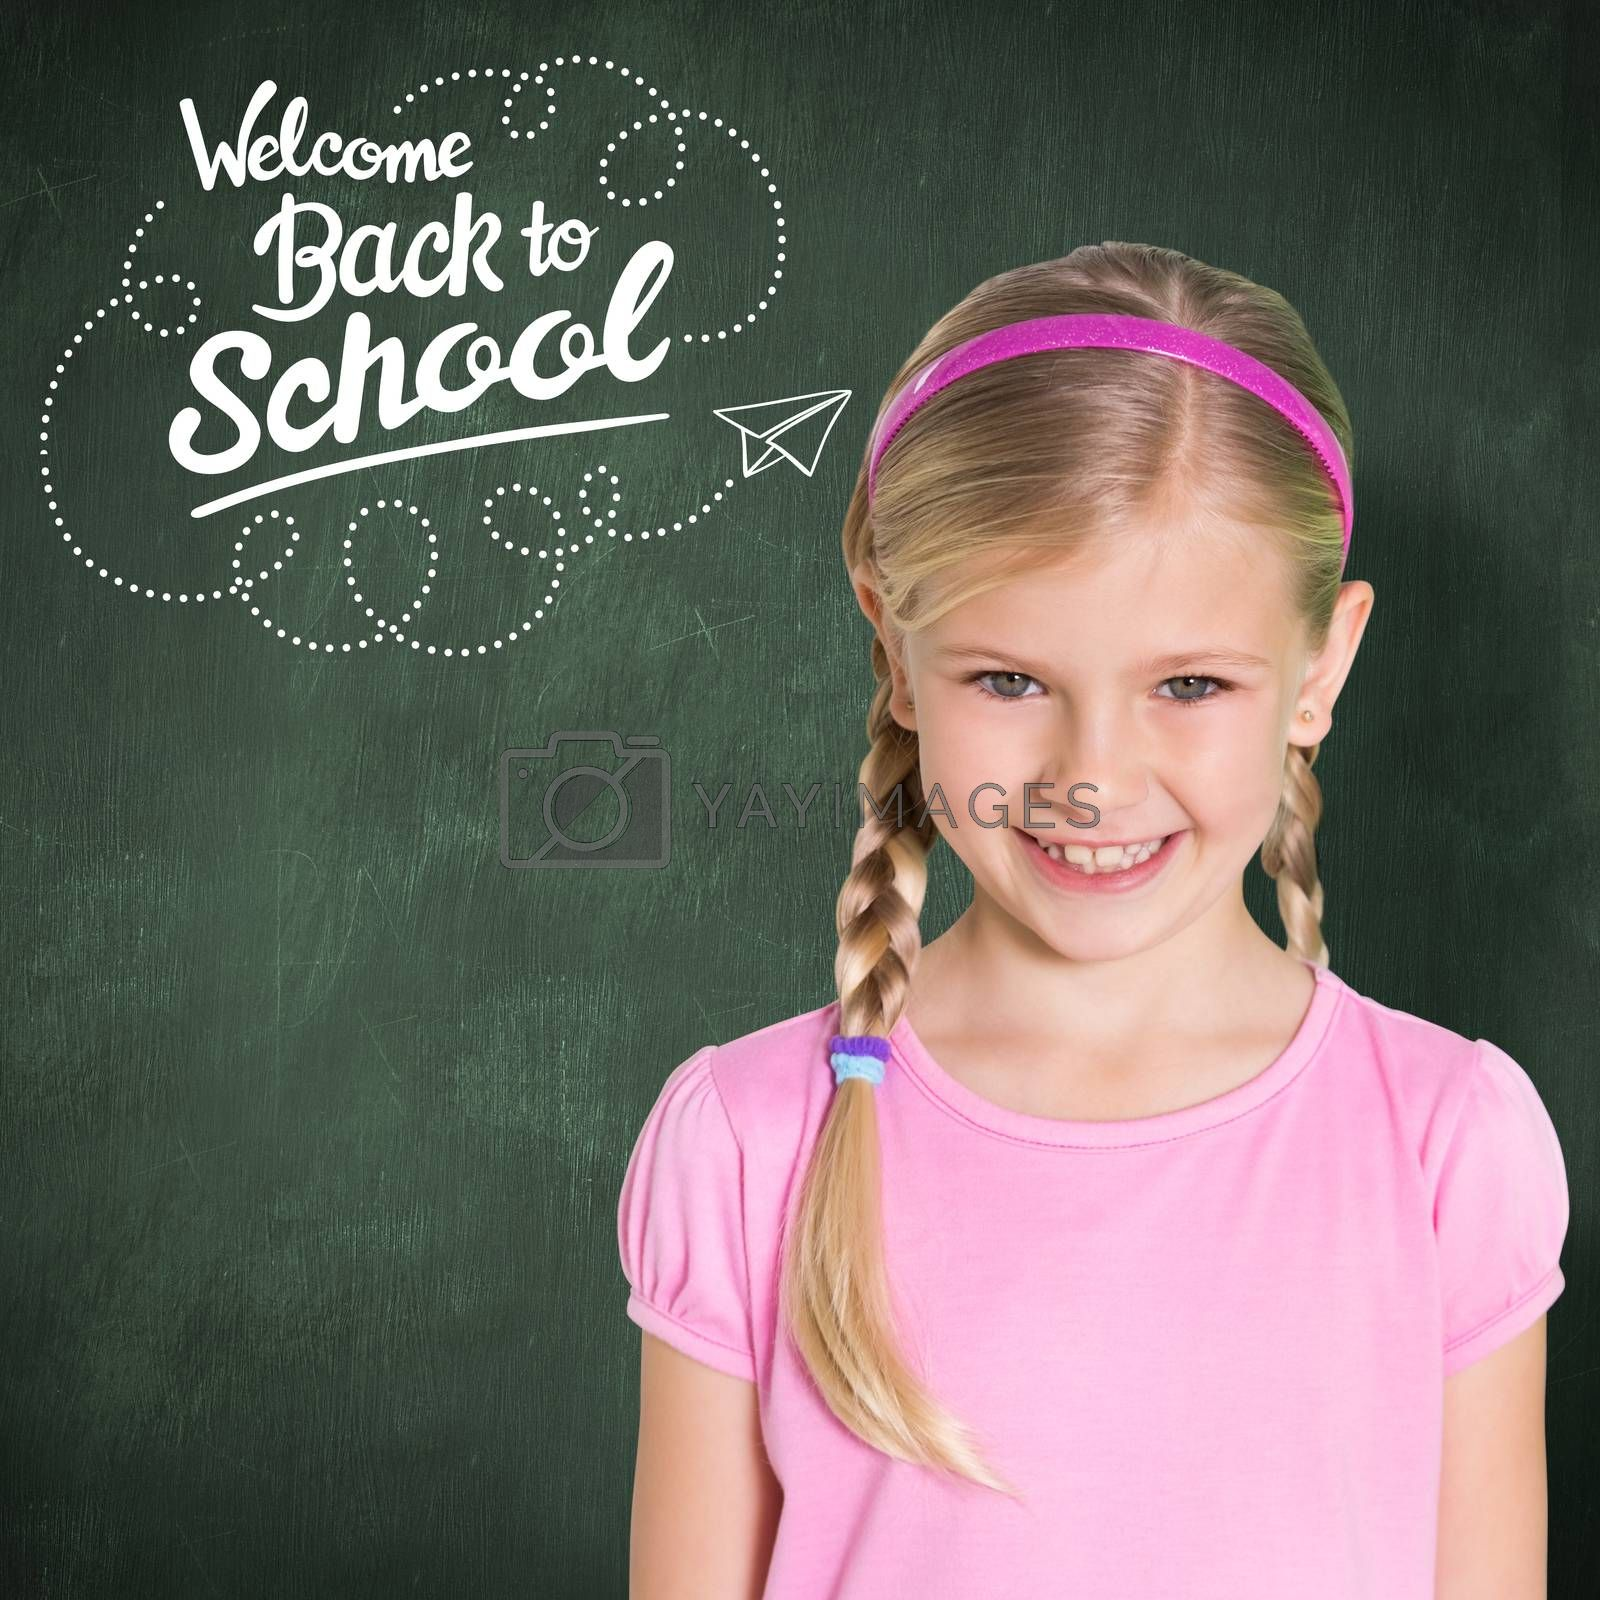 Composite image of cute girl smiling at camera by Wavebreakmedia